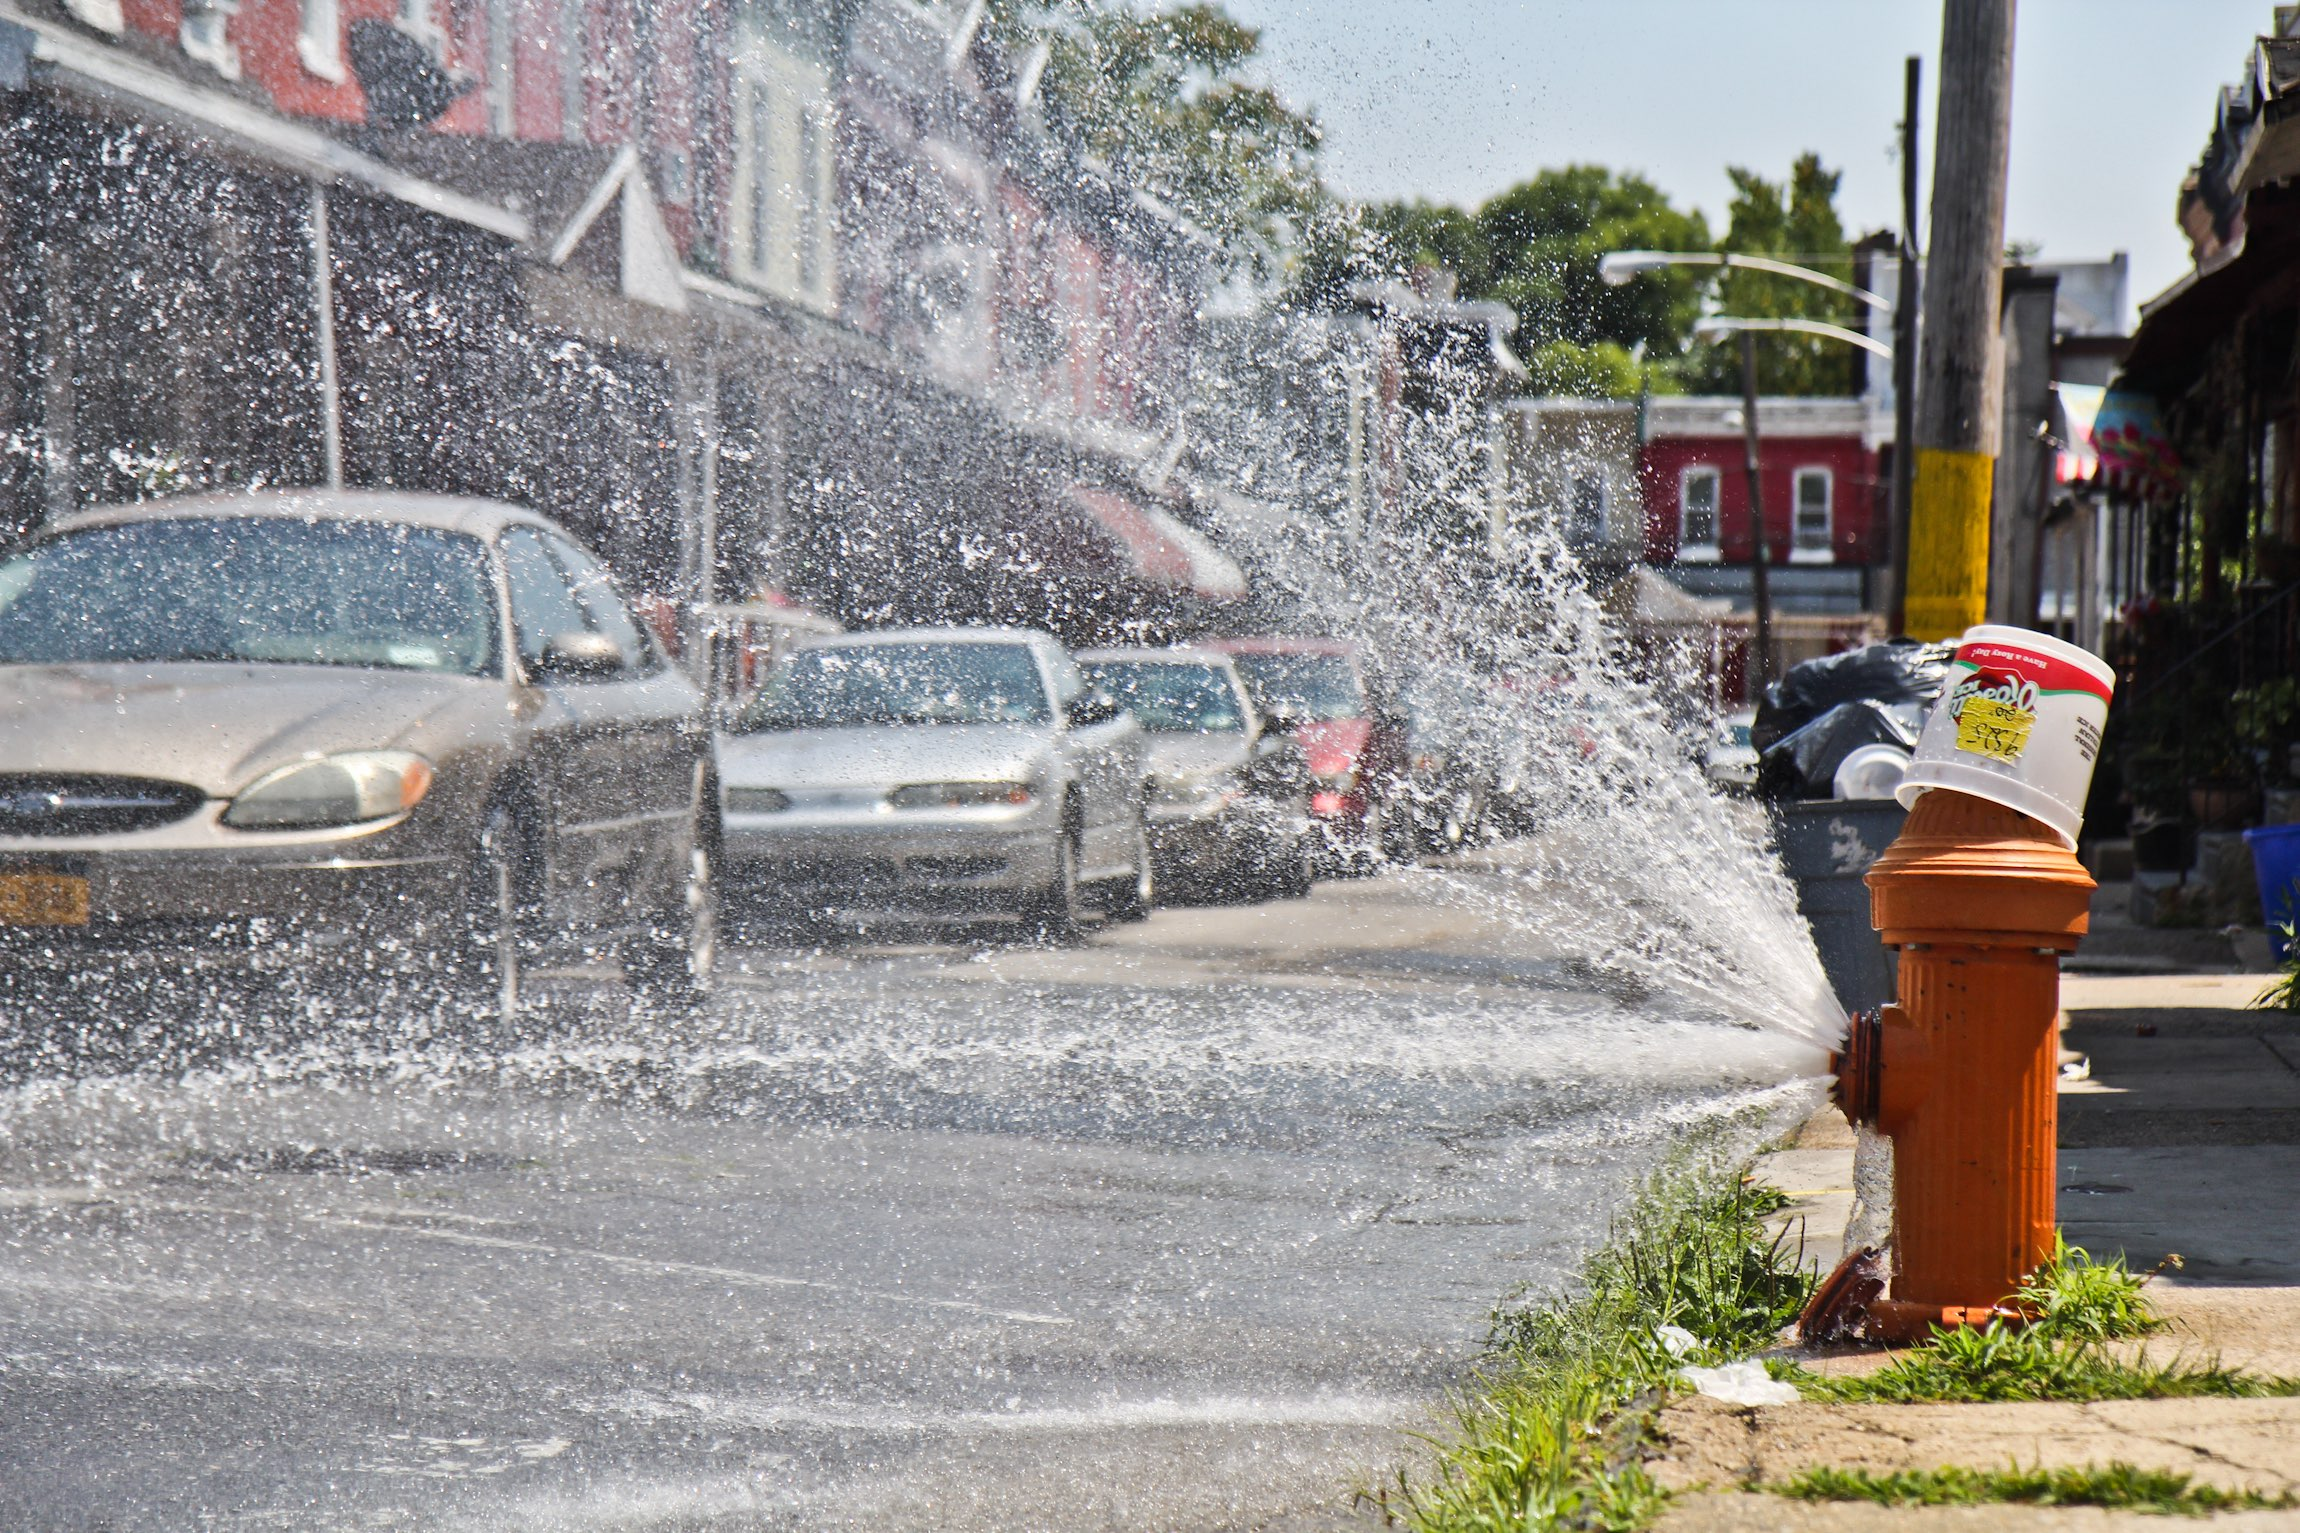 Heat adds deadly risks to coronavirus pandemic in Philly - WHYY